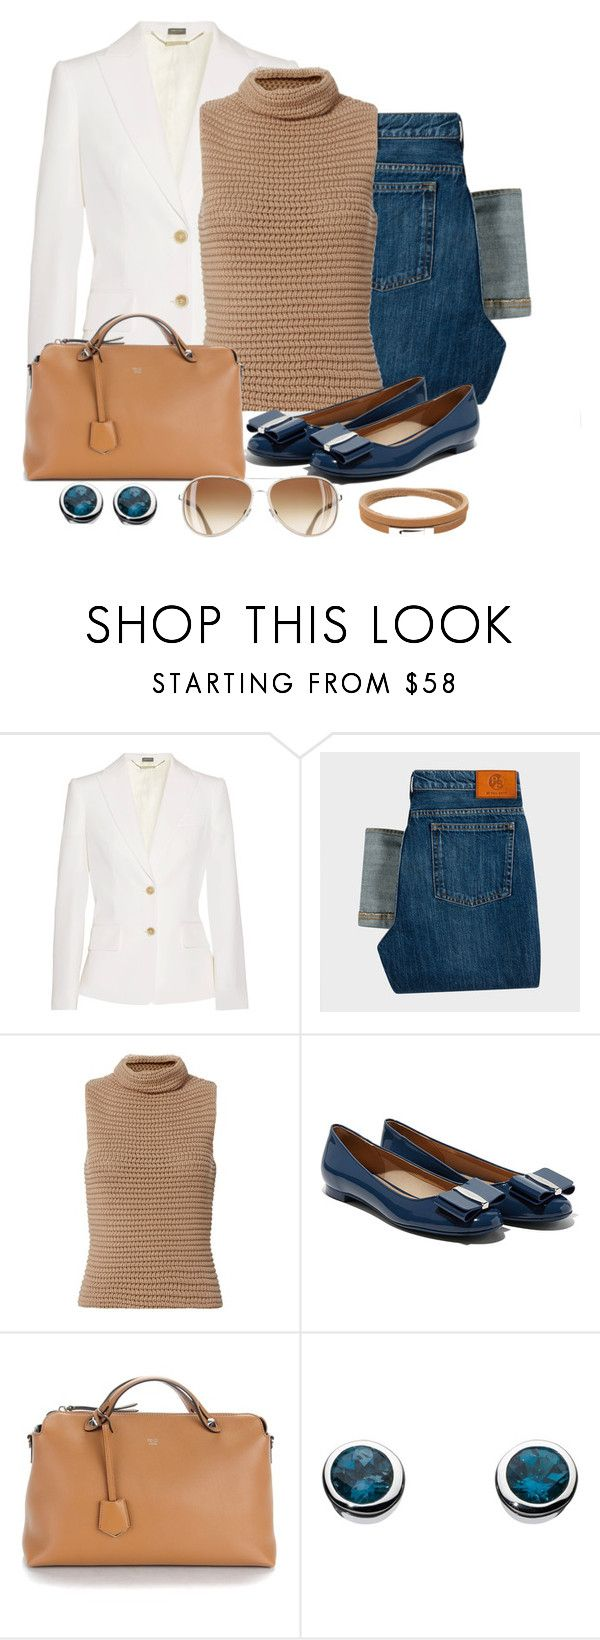 """""""Untitled #1305"""" by gallant81 ❤ liked on Polyvore featuring Alexander McQueen, PS Paul Smith, Exclusive for Intermix, Fendi, Kit Heath and Ted Baker"""